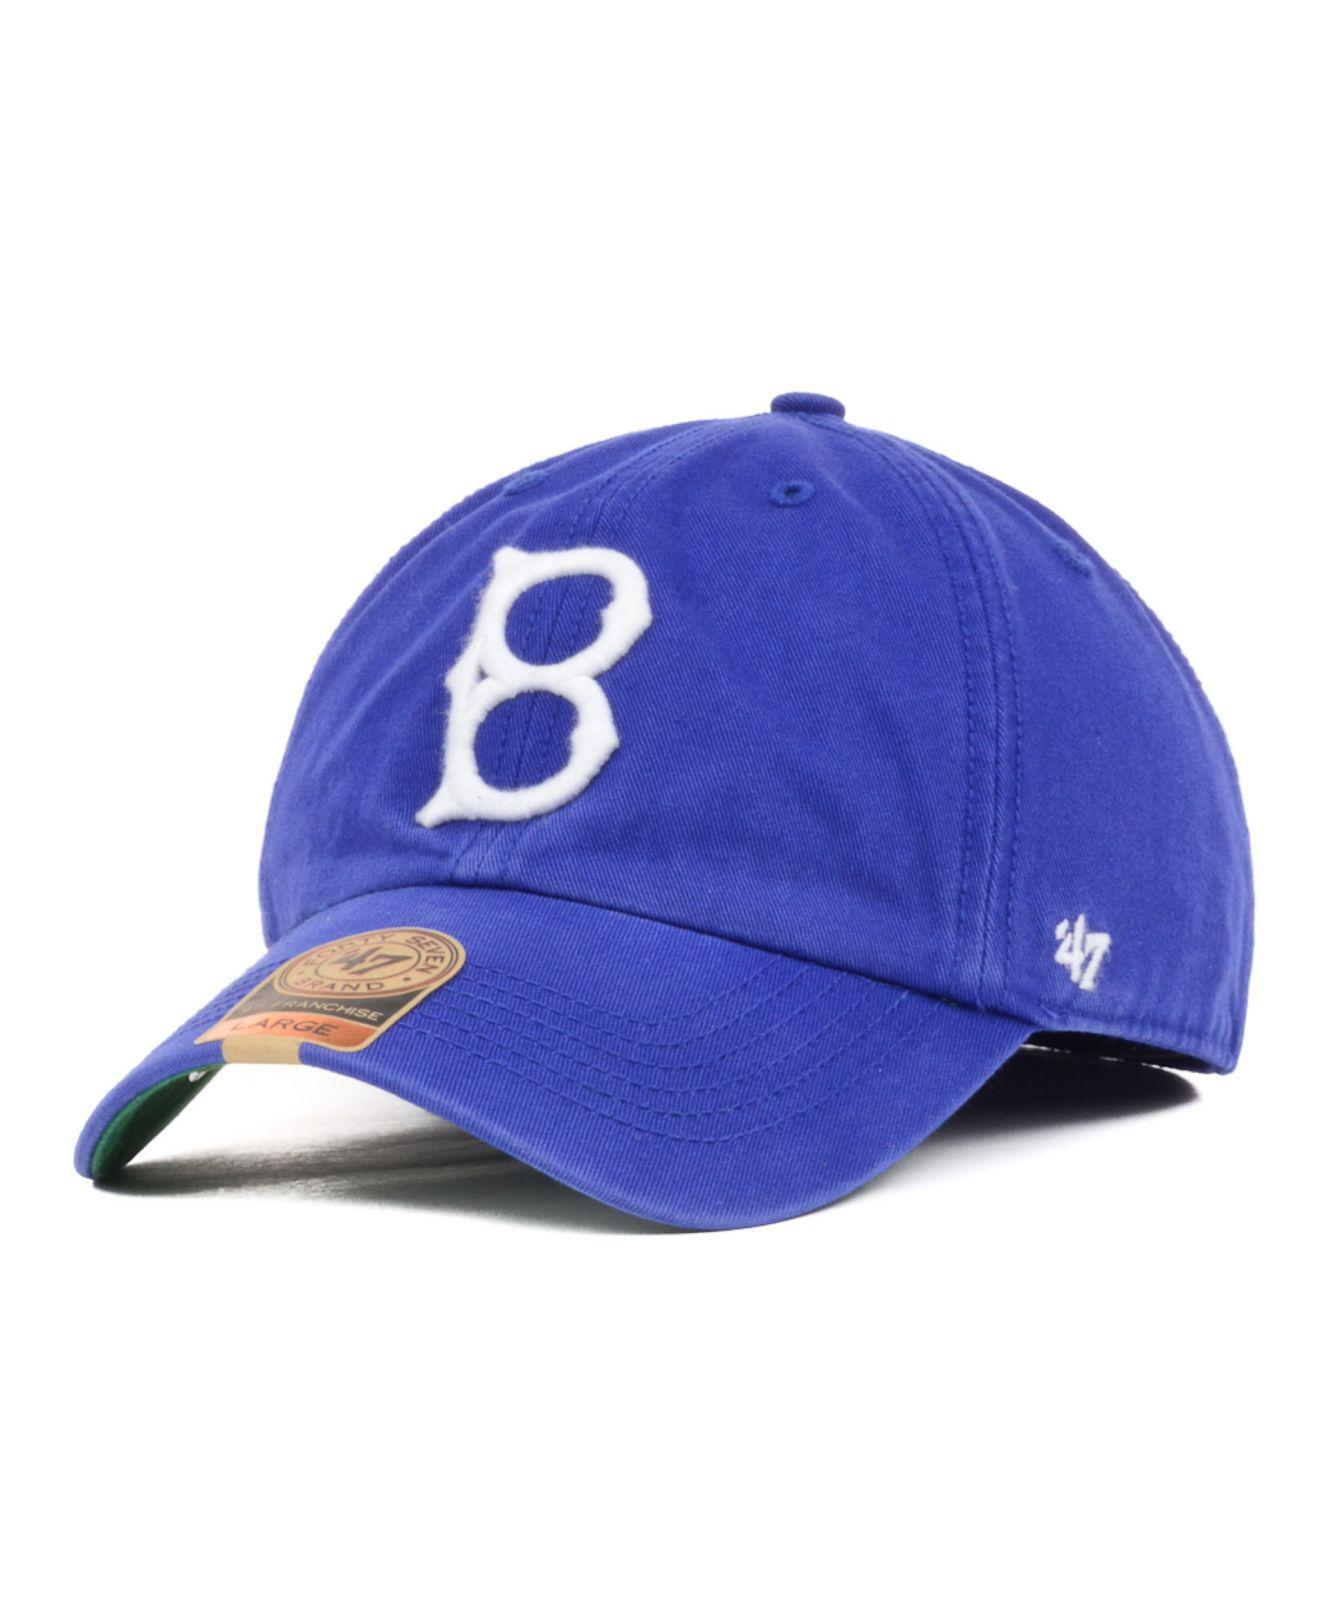 Lyst - 47 Brand Brooklyn Dodgers Franchise Cap in Green for Men bf5a5cd8648d